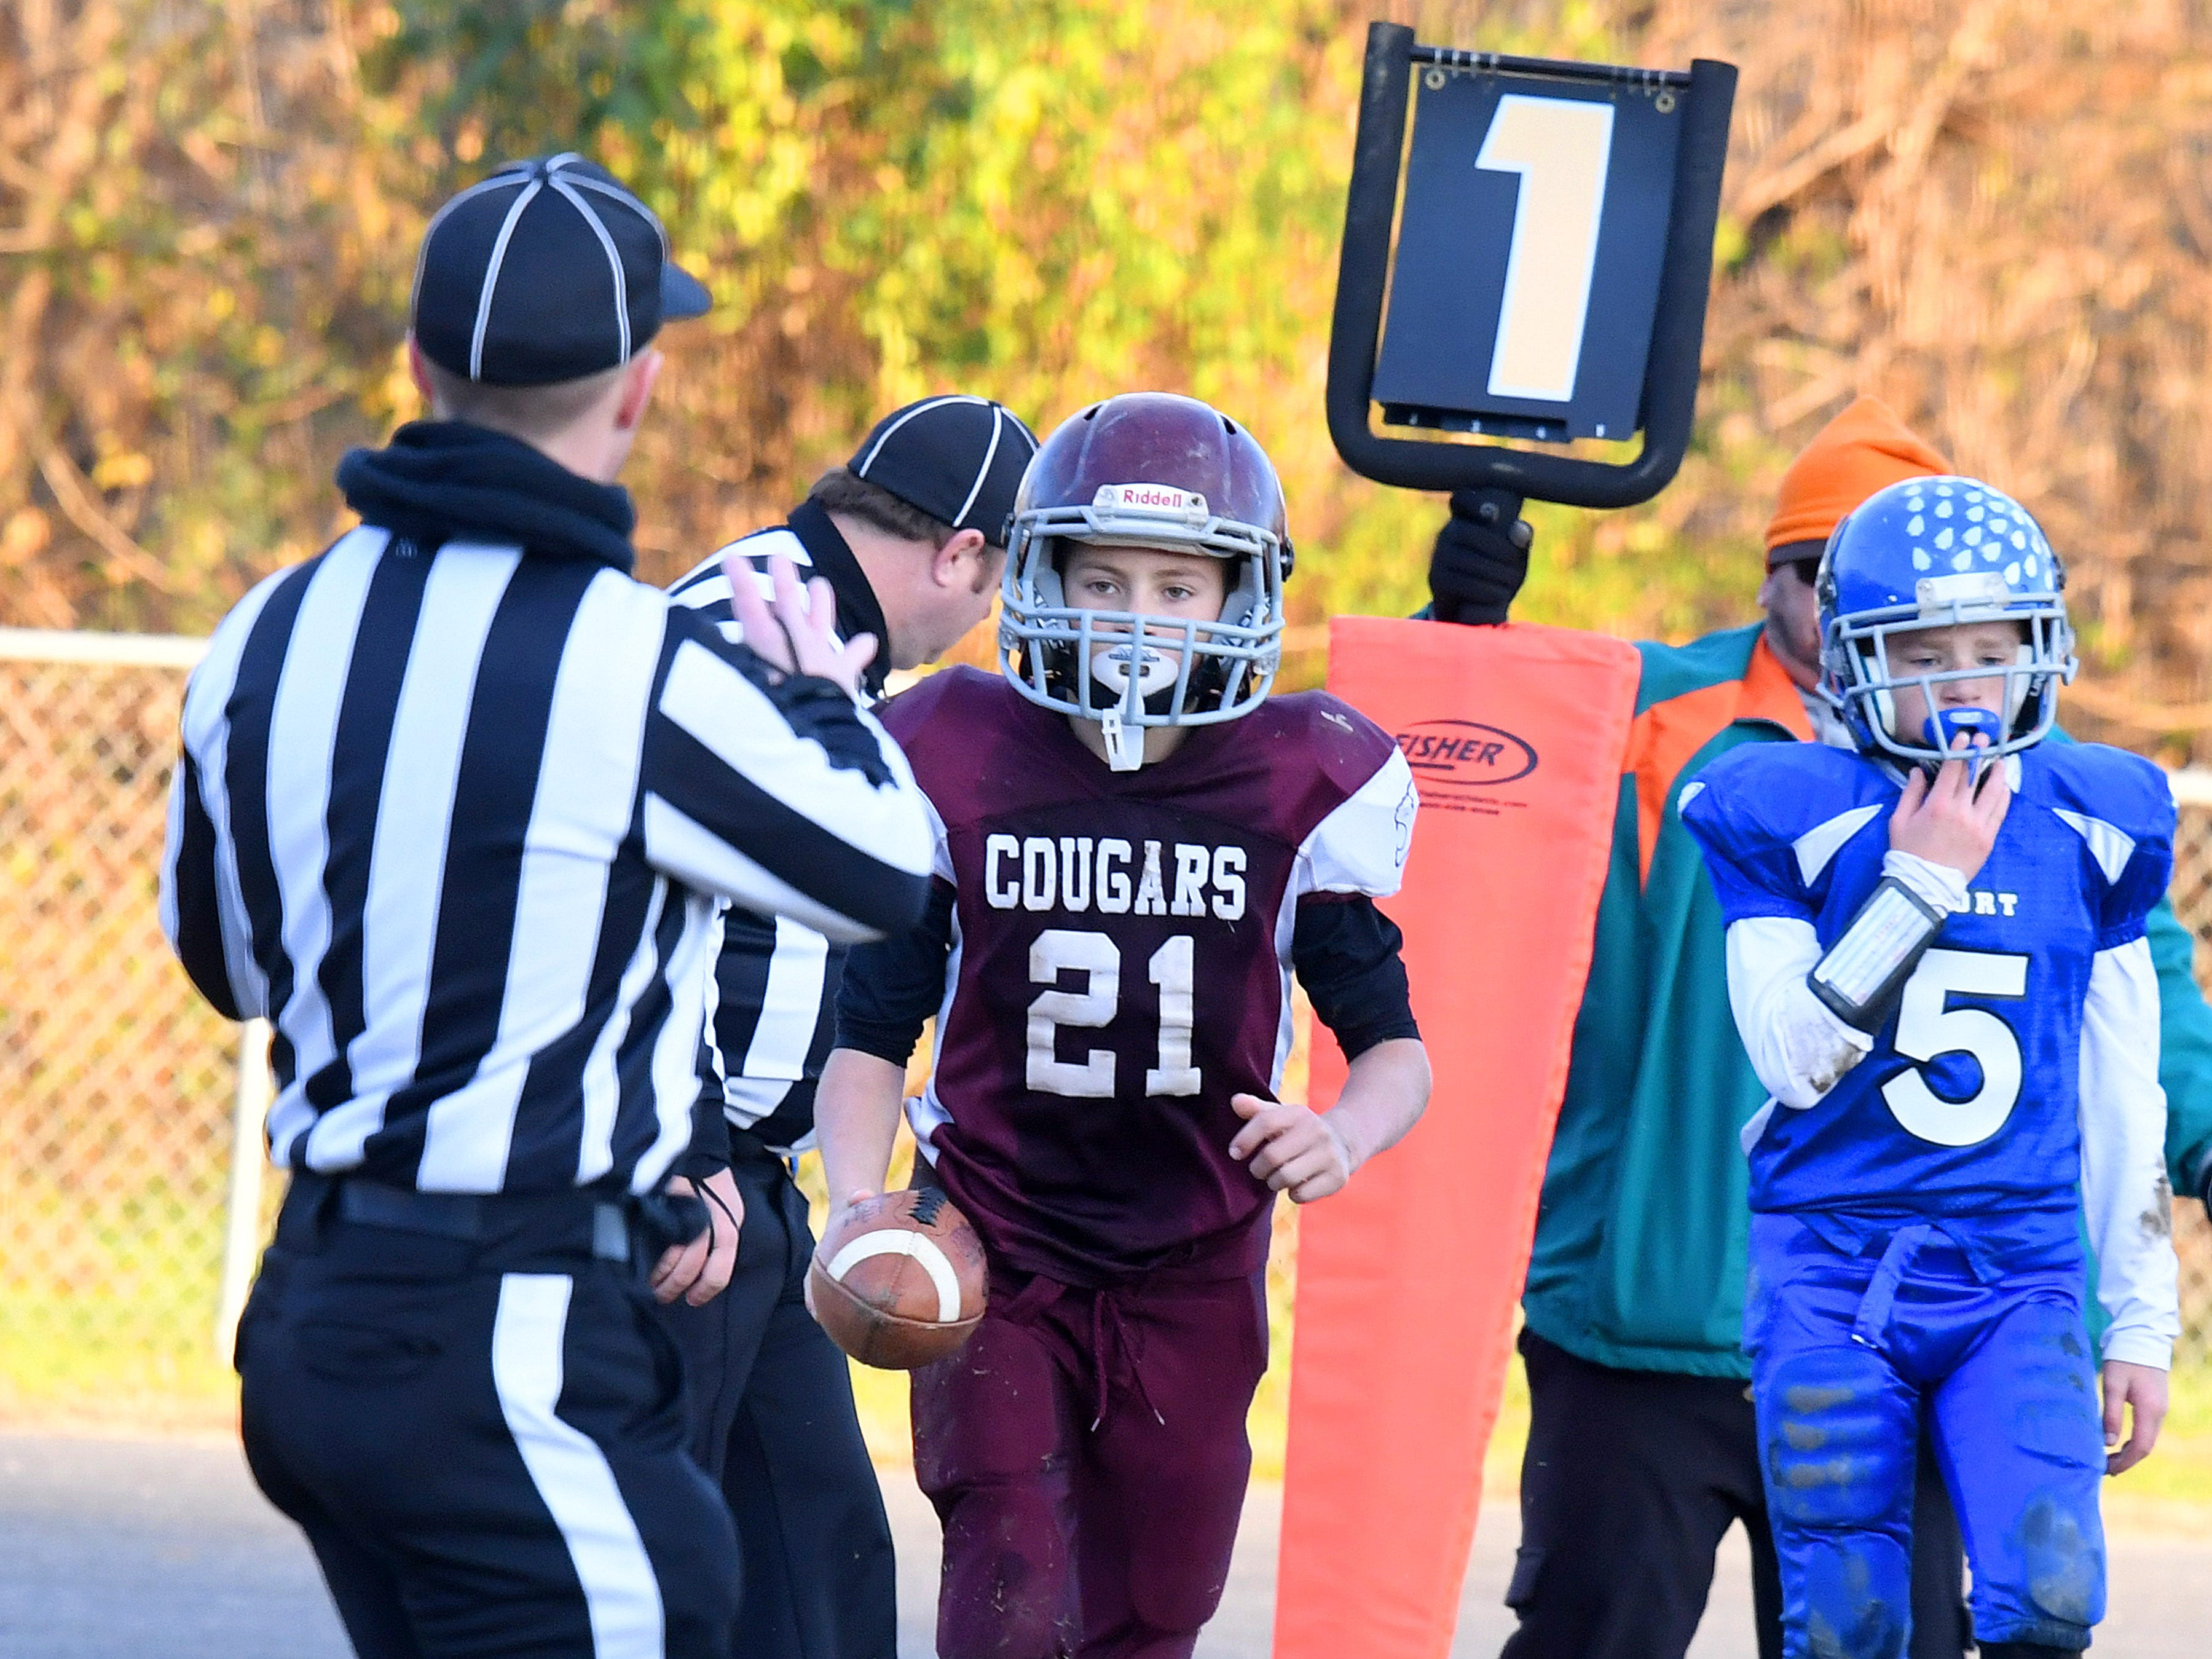 Stuarts Draft's Landon Graber comes up with the ball after making it into the end zone for a touchdown during the Augusta County Quarterback Club Juniors Super Bowl in Fishersville on Sunday, Nov. 11, 2018.  Fort Defiance beats Stuarts Draft, 13-12.